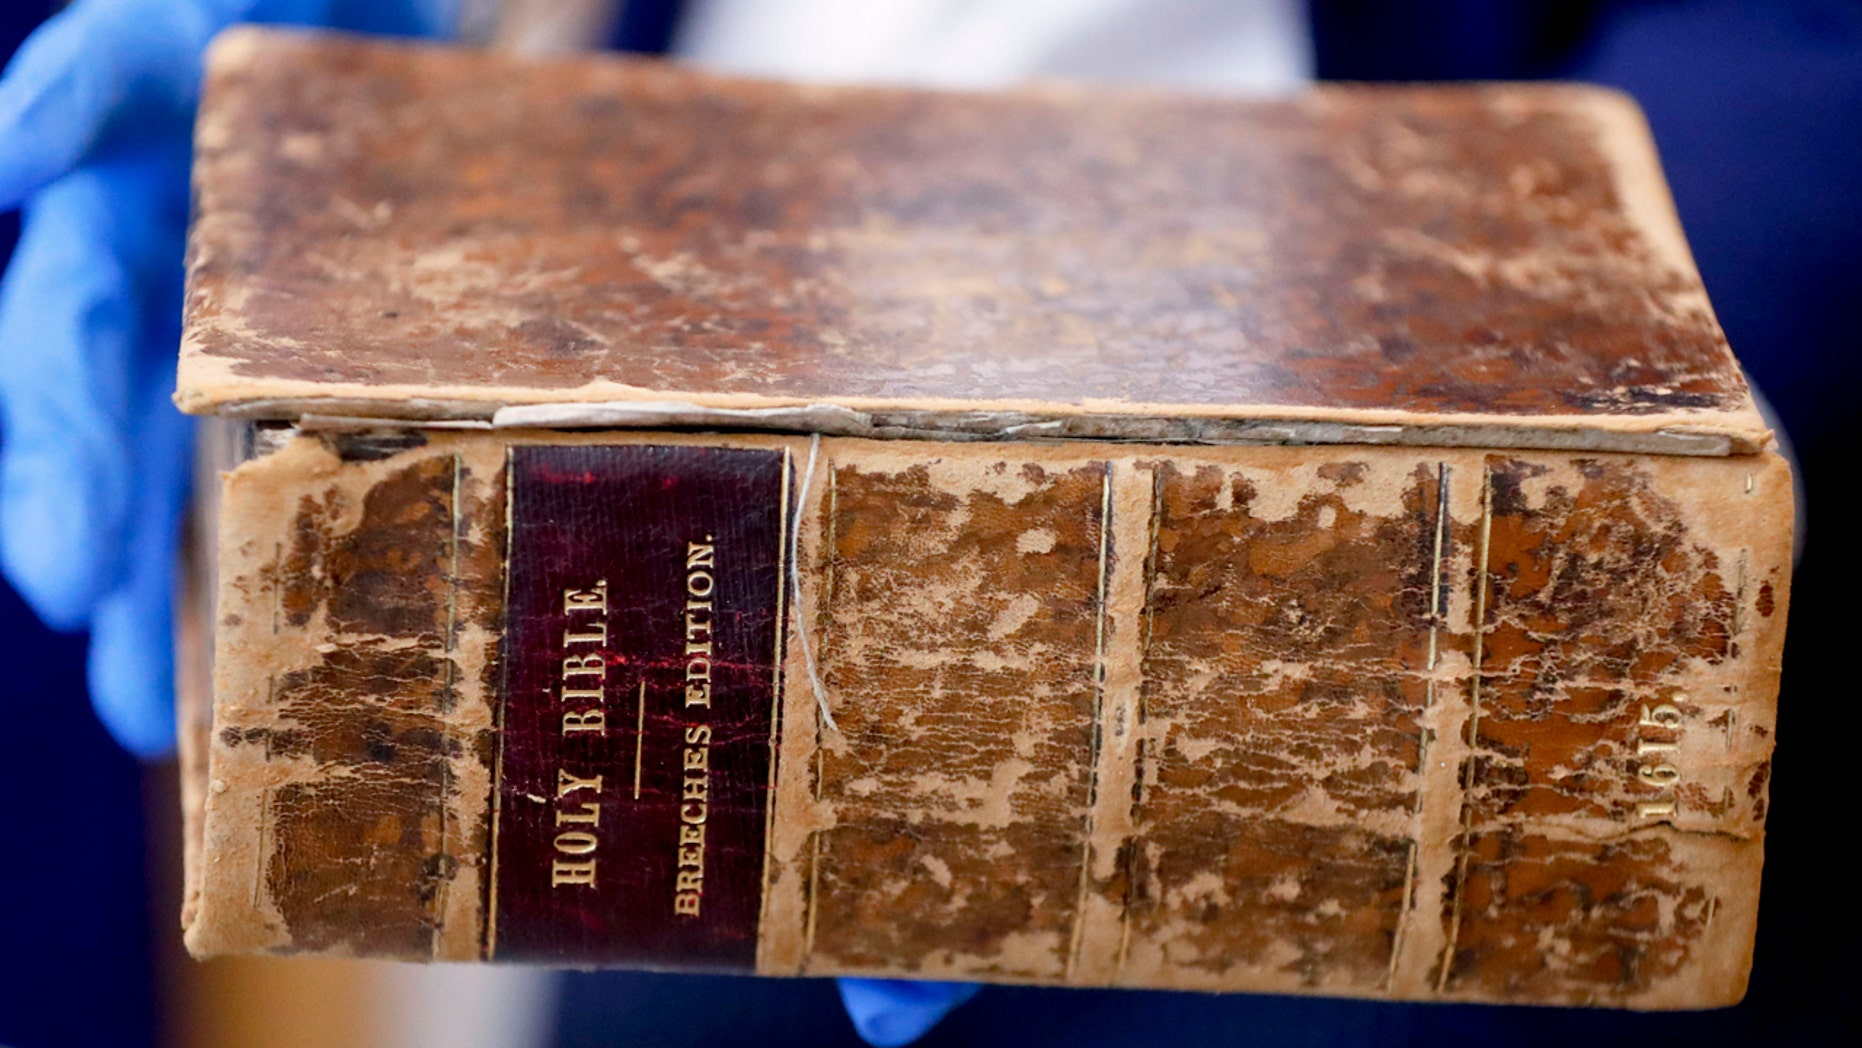 Westlake Legal Group GenevaBible2 400-year-old Pilgrims Bible stolen from US as part of $8M heist returns home: FBI fox-news/world/religion/christianity fox-news/us/crime/robbery-theft fox-news/us/crime fox-news/faith-values/faith fox-news/faith-values fox news fnc/science fnc Caleb Parke article ad301c90-aa6c-5880-a2d2-5fc291dc10a3